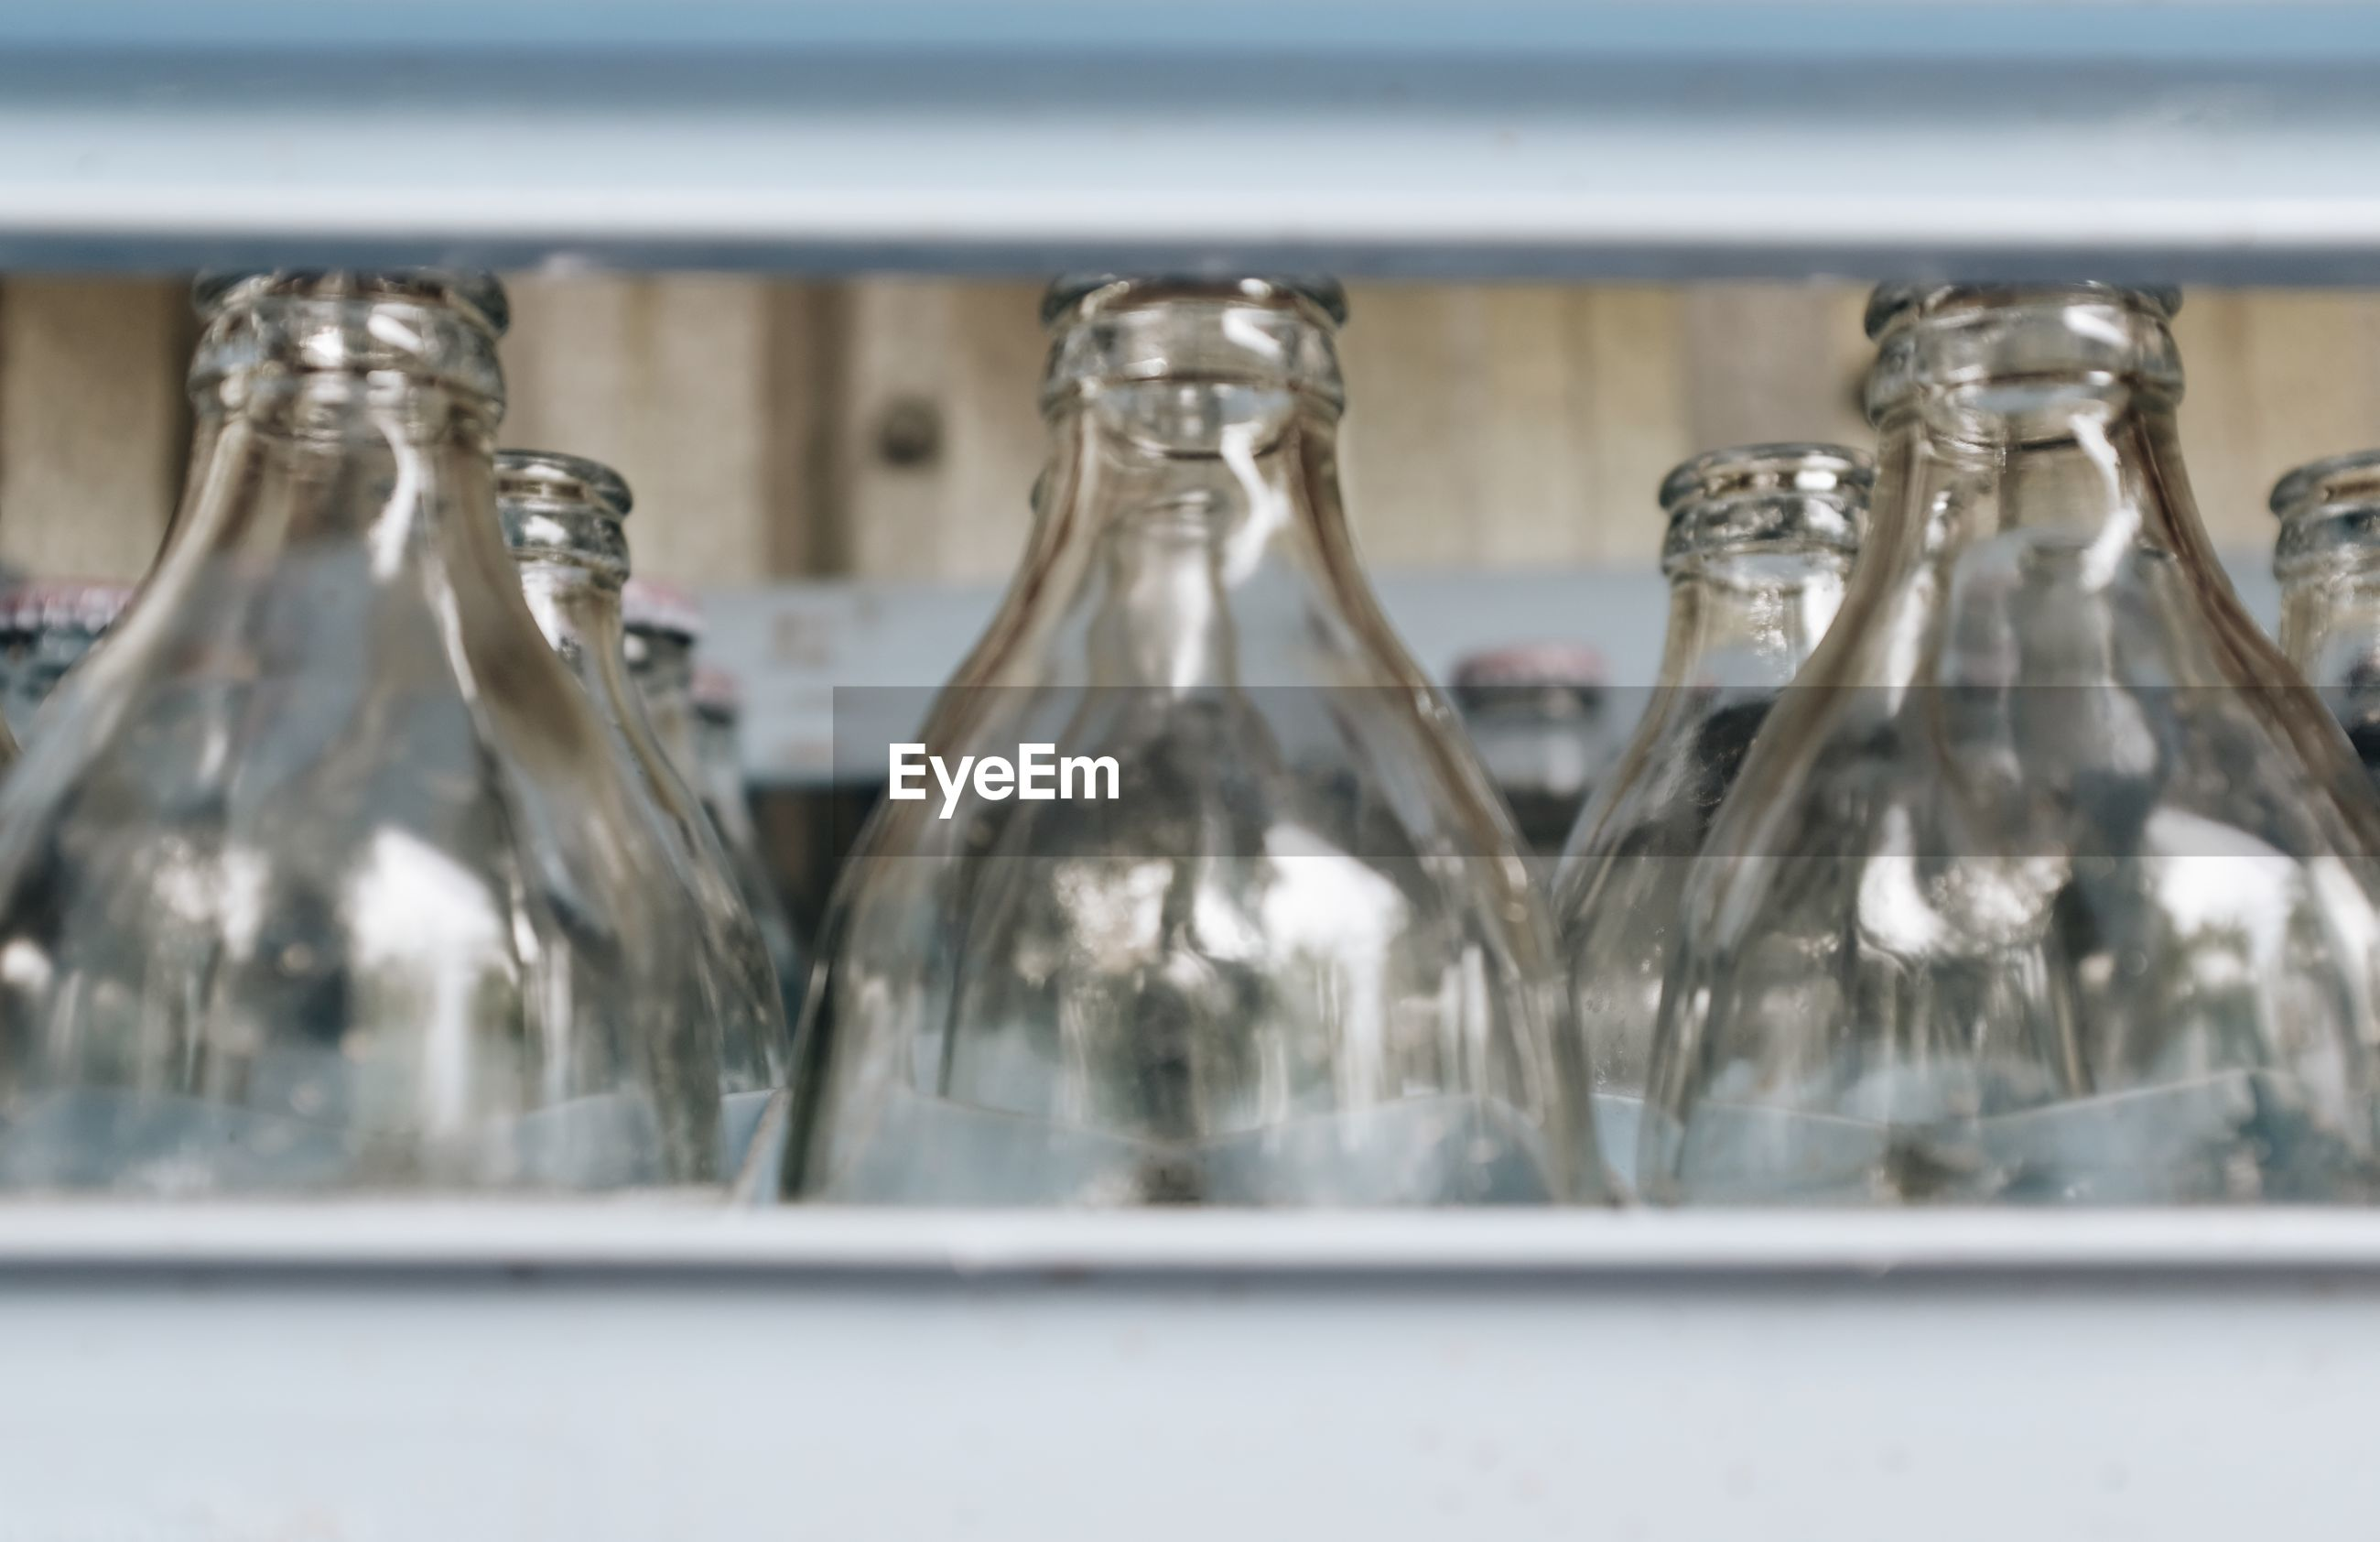 A close up shot of a glass bottle in the bottle cage